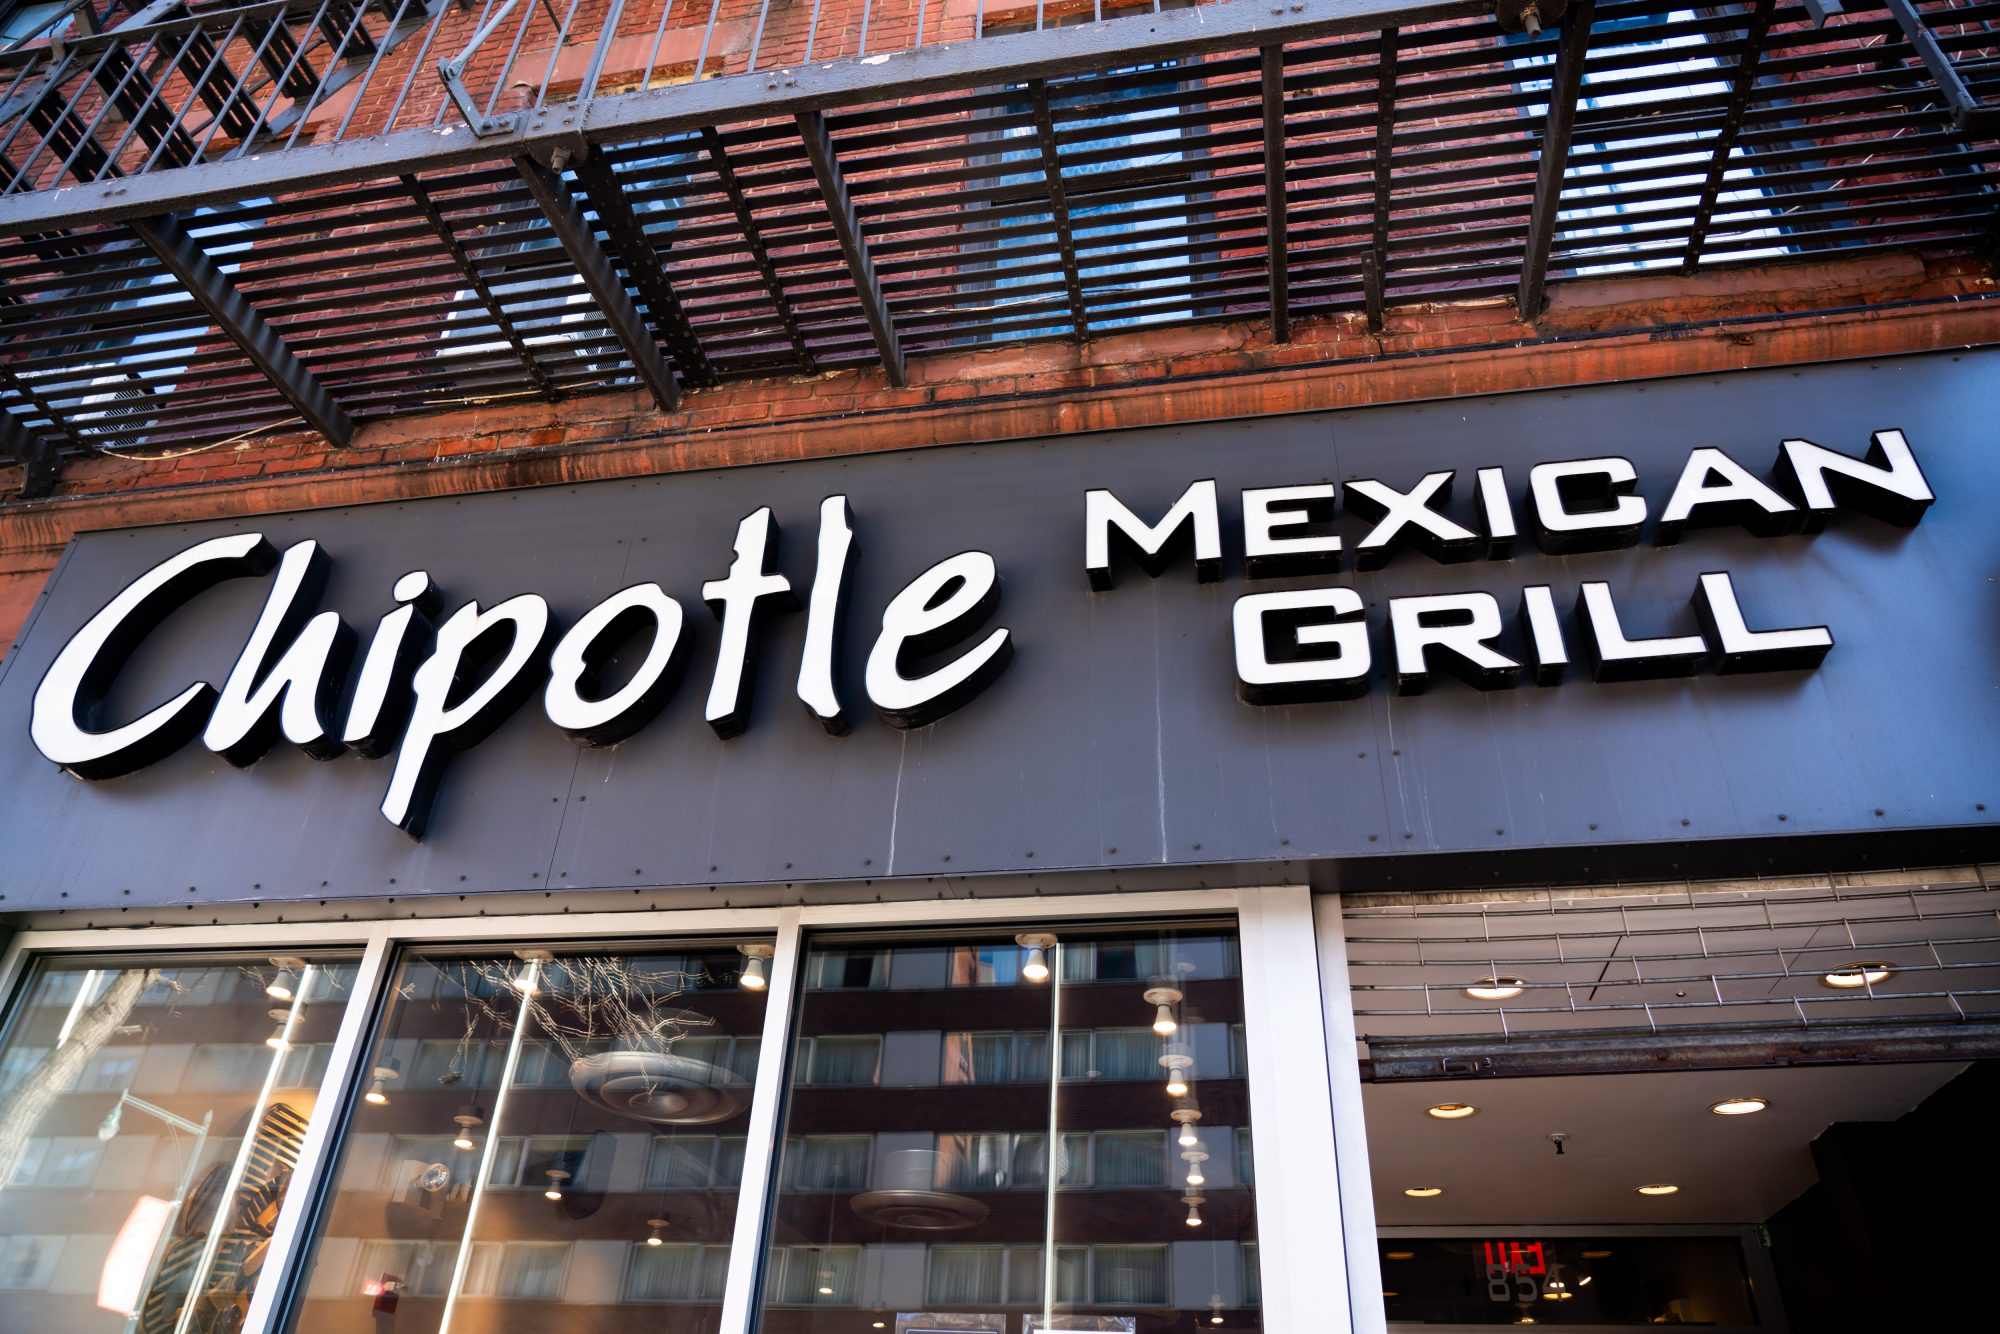 American fast casual restaurants chain, Chipotle Mexican